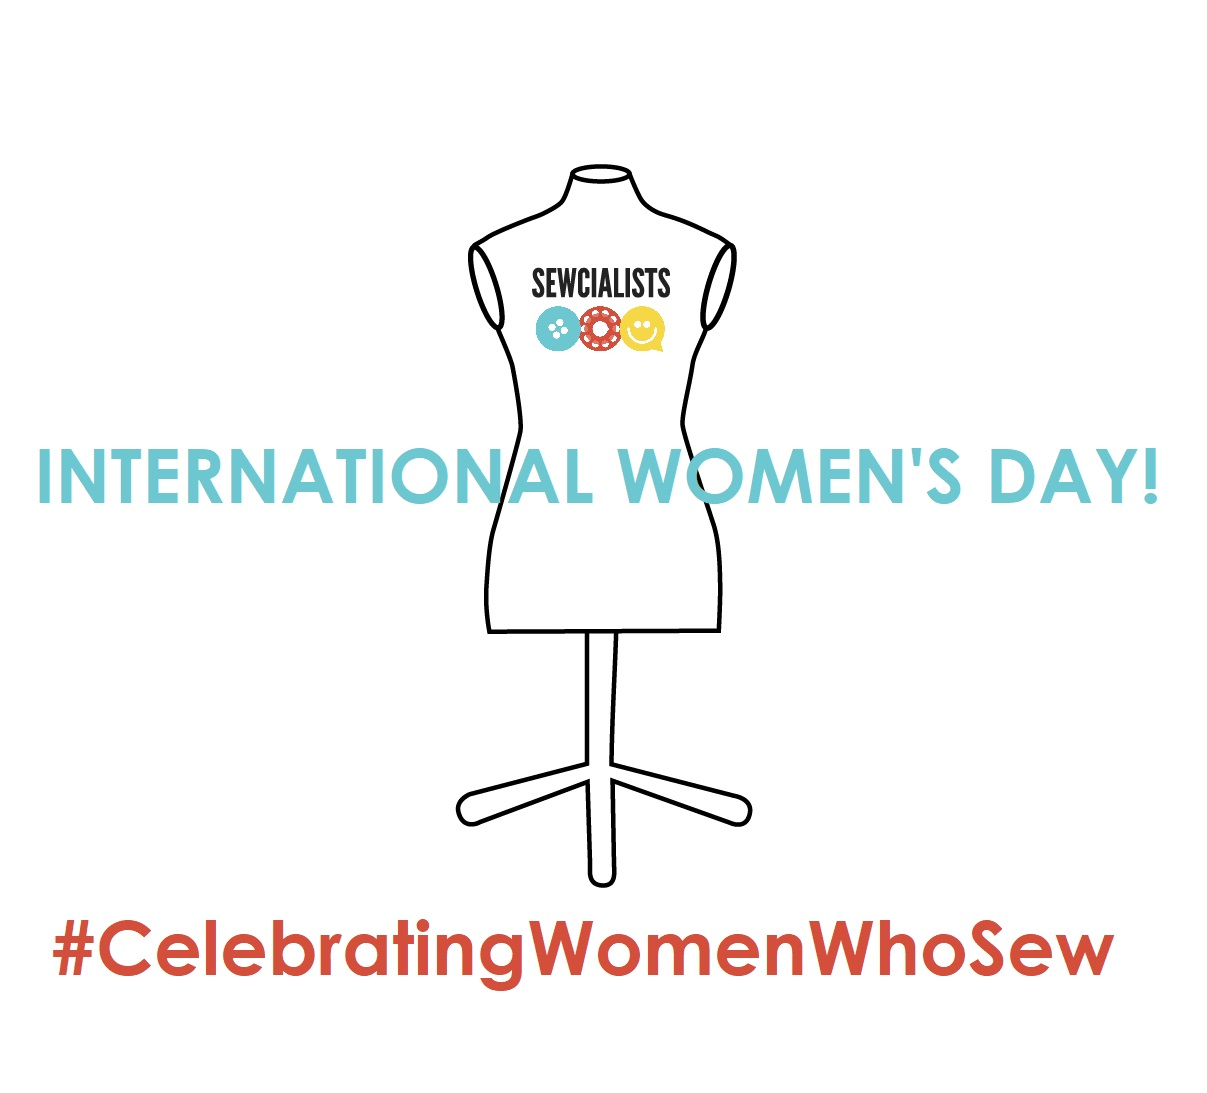 Dress form logo with text saying International Women's Day and the hashtag Celebrating Women Who Sew